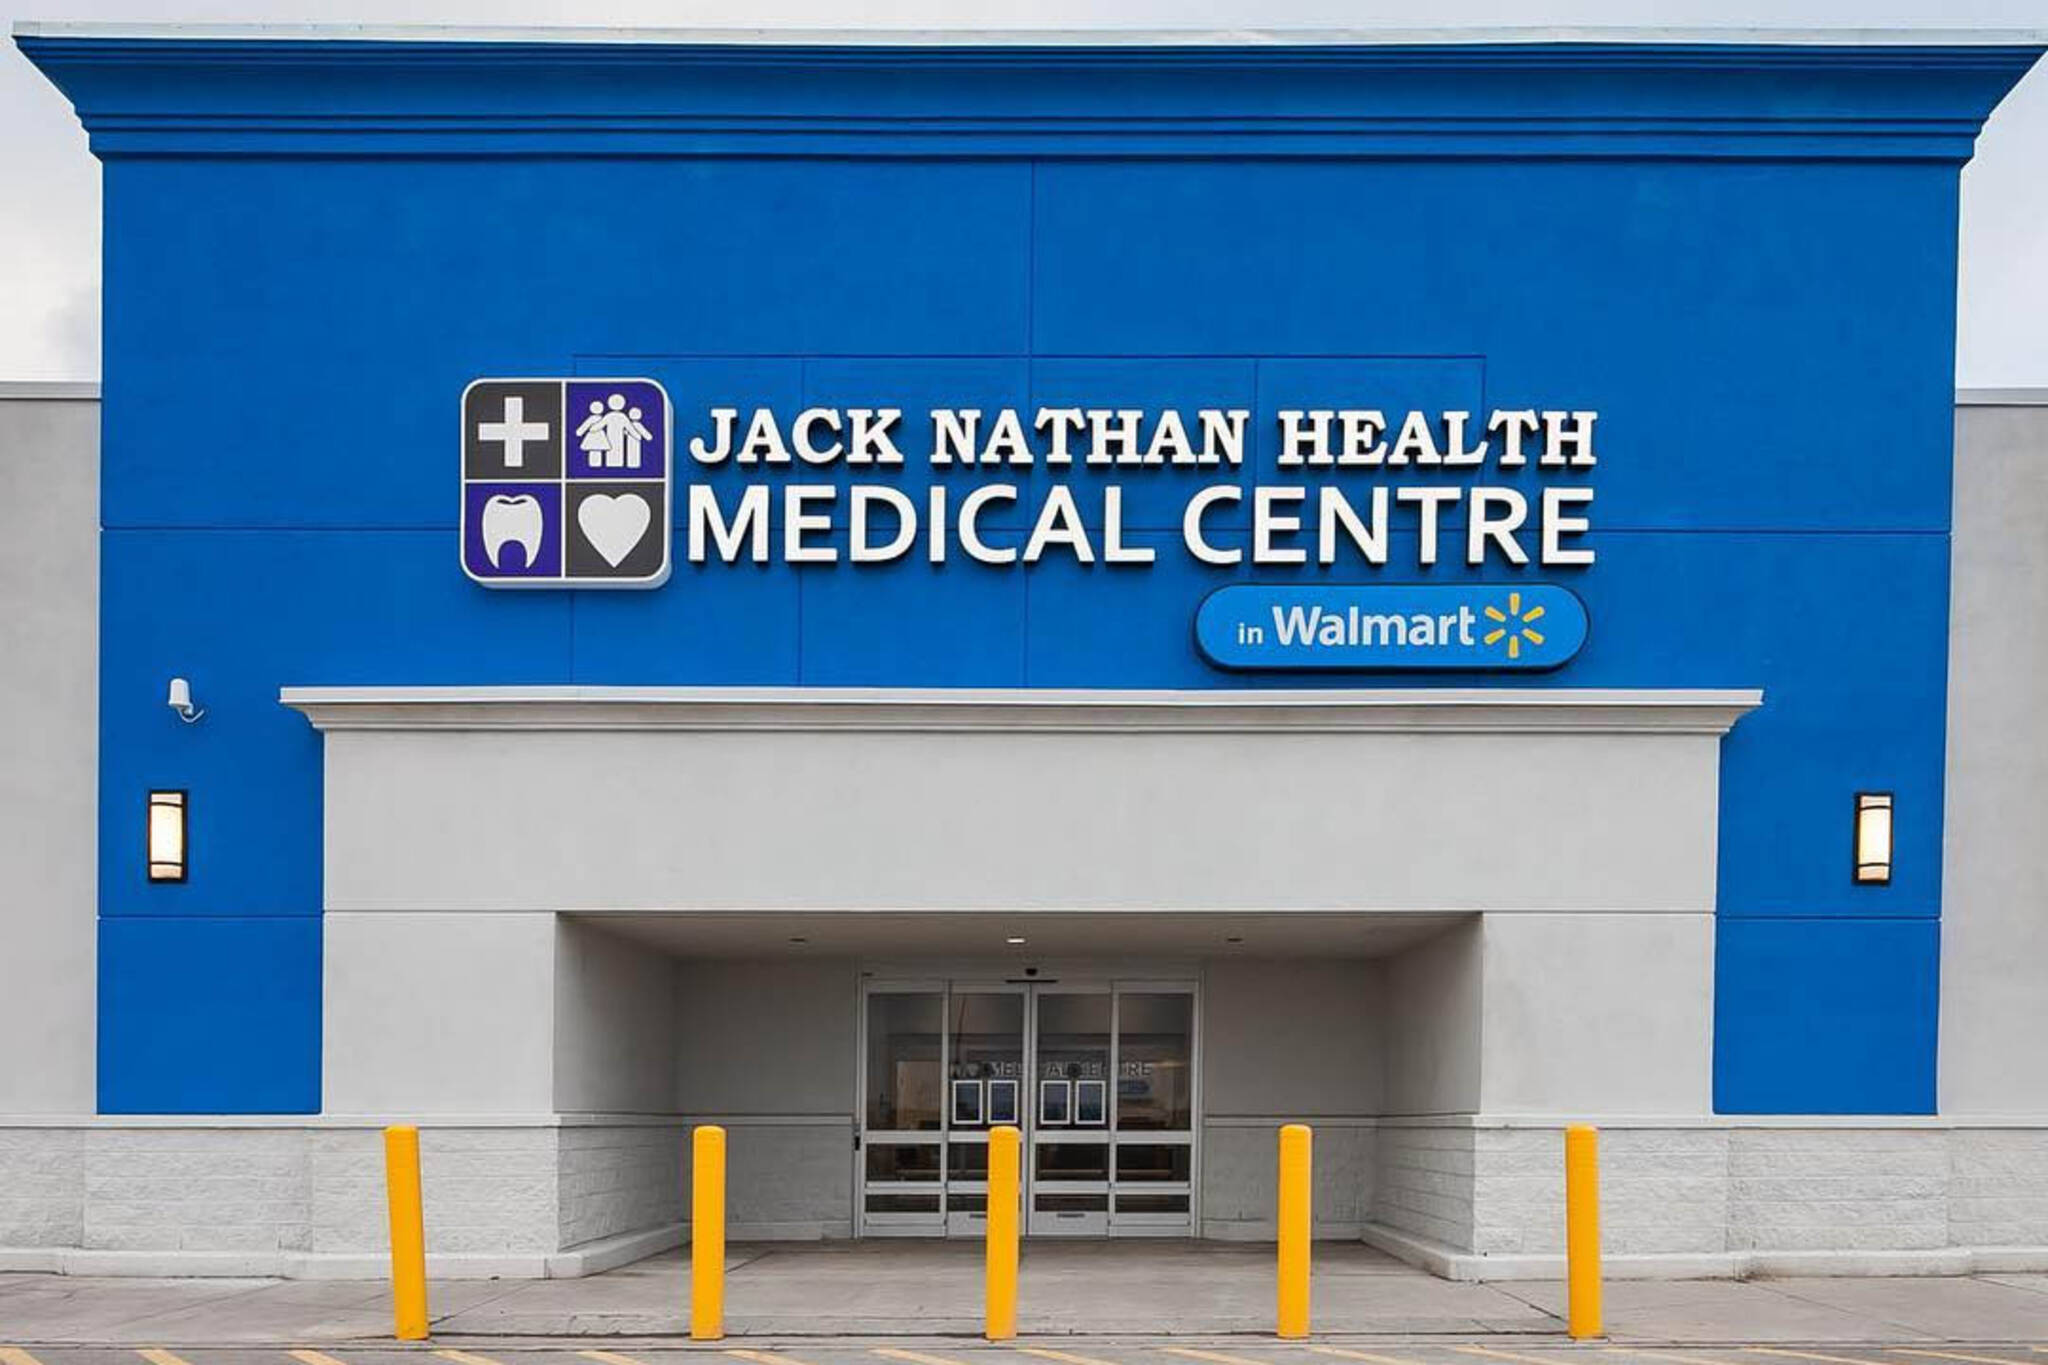 Walmart launches full-service medical clinic to compete with